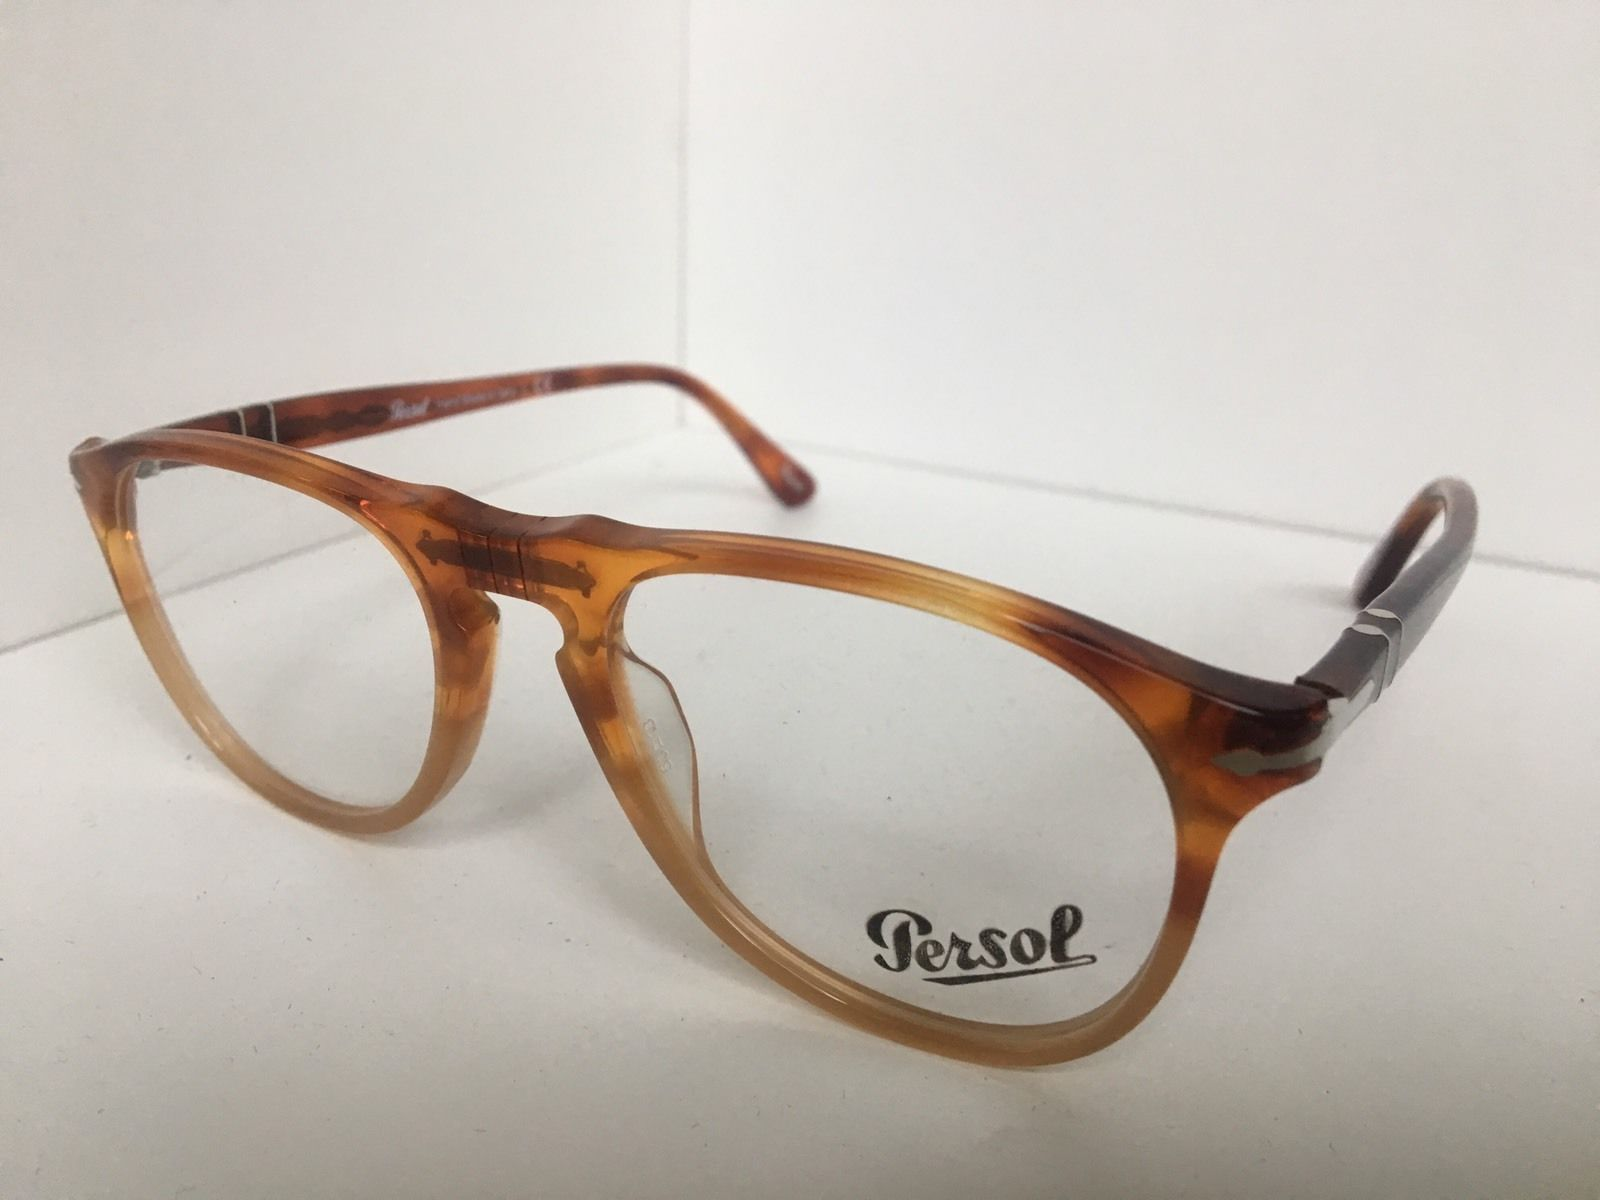 8f266ac8b5 New Persol 9649-V 1025 Amber Resina e Sale and 50 similar items. S l1600